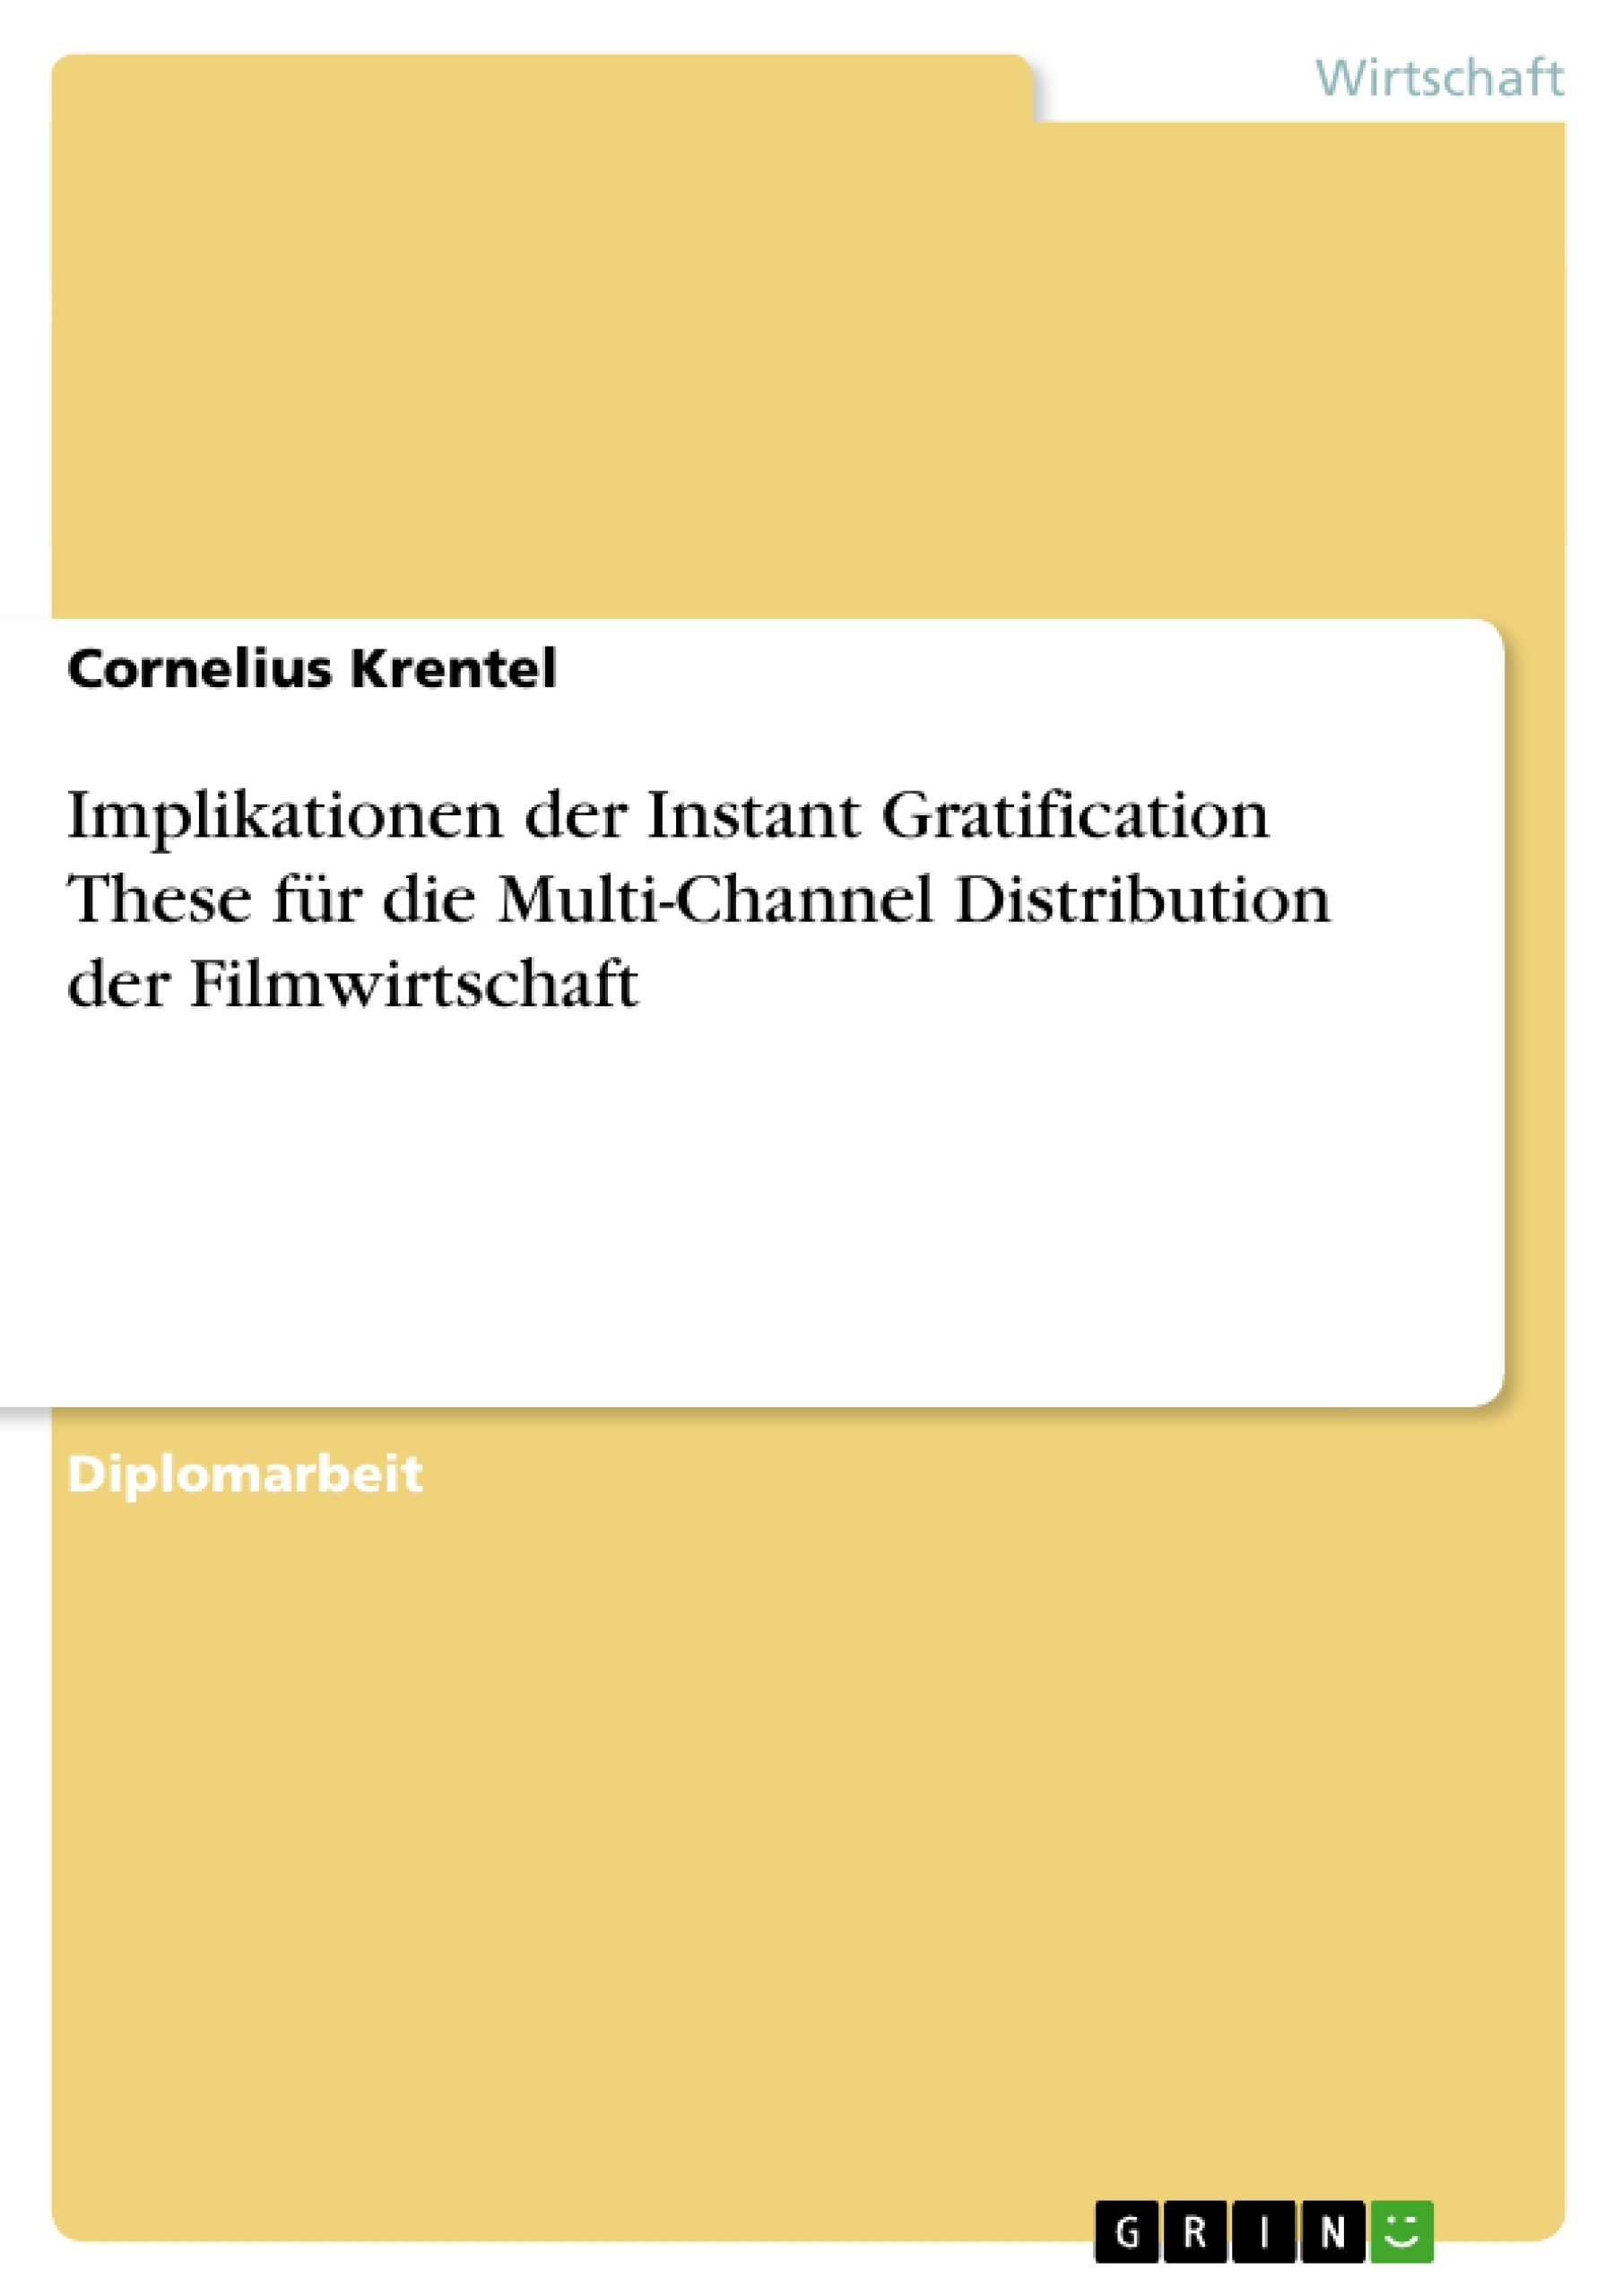 Titel: Implikationen der Instant Gratification These für die Multi-Channel Distribution der Filmwirtschaft